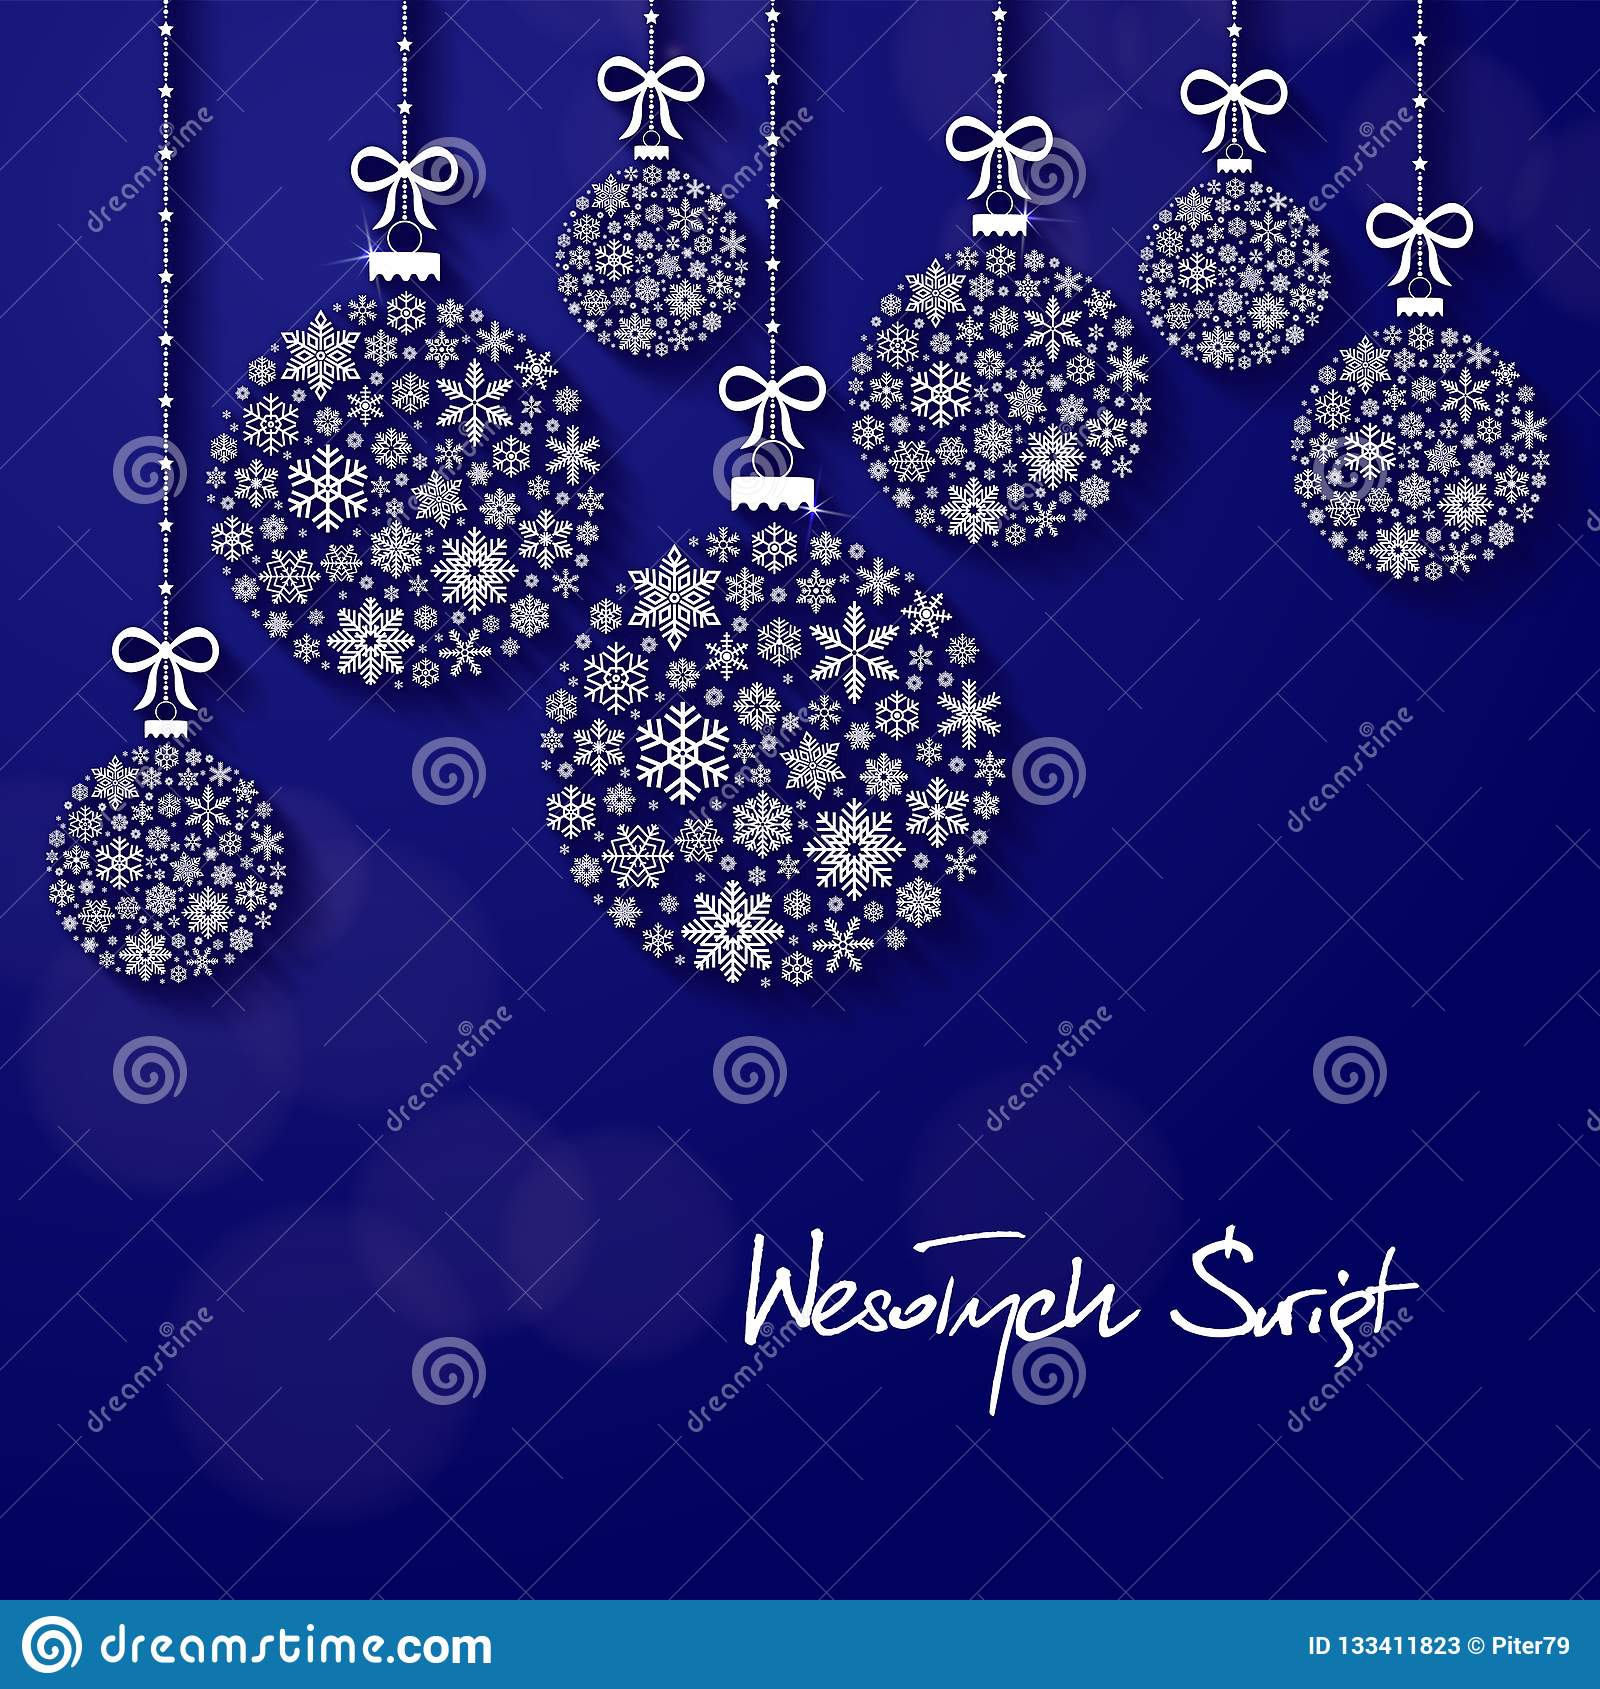 Merry Christmas In Polish.Greeting Card With The Words Merry Christmas In Polish Stock